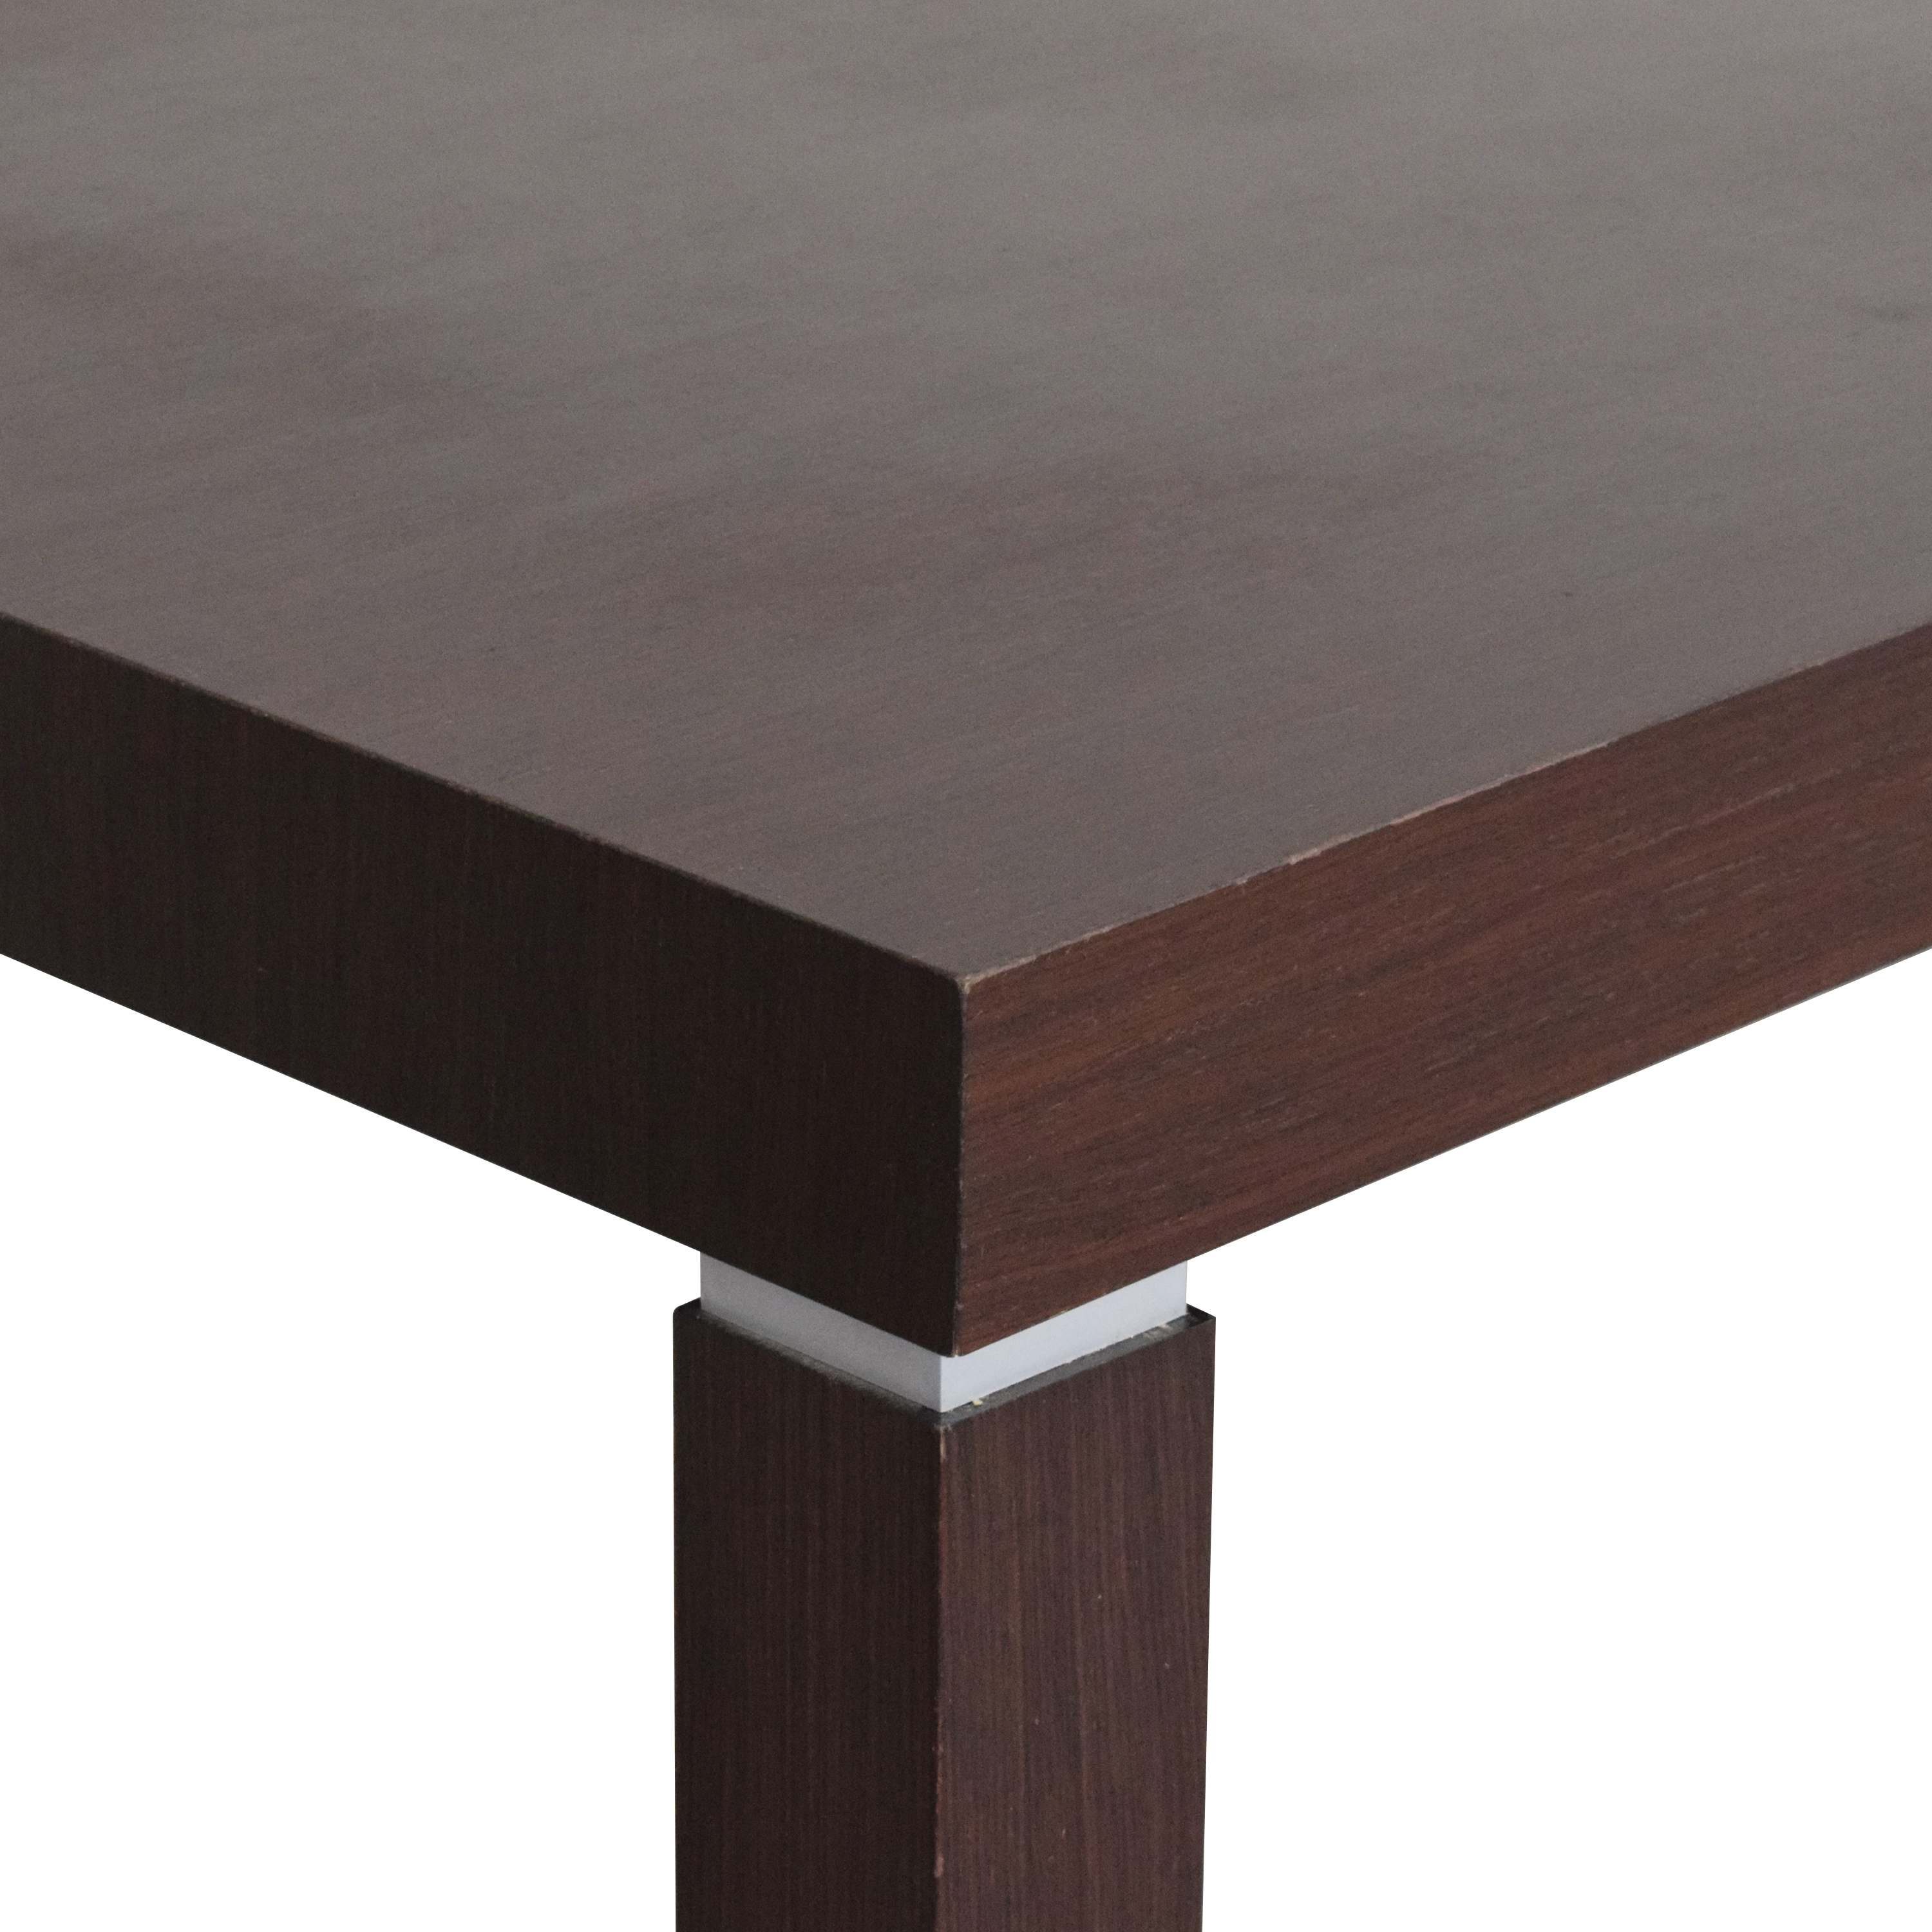 Rossetto Rossetto Extendable Dining Table second hand